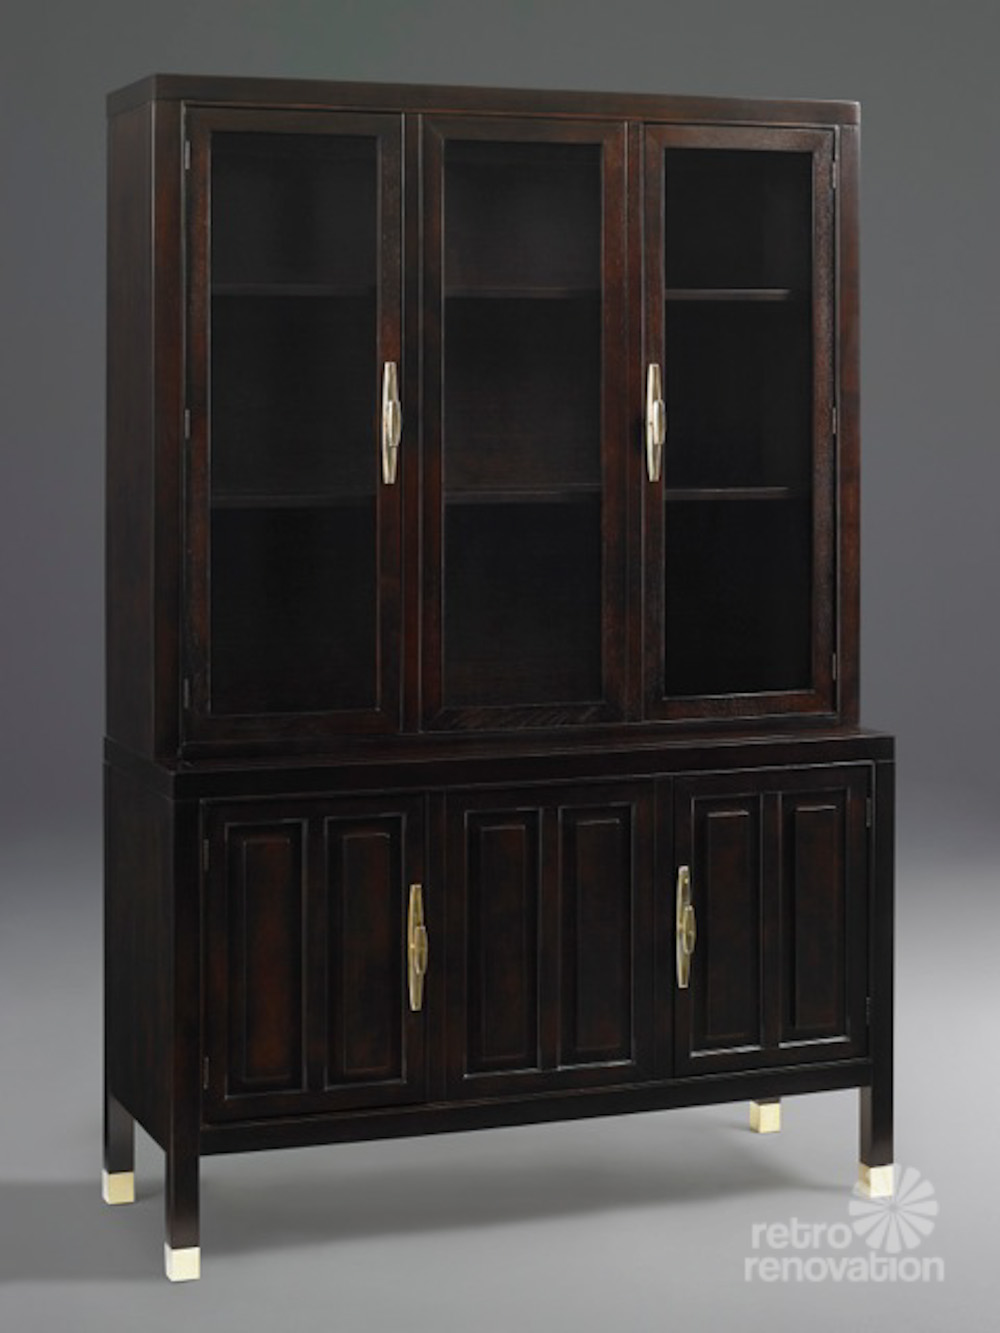 Restored Vintage Stanley Furniture Heritage Collection An Interview With Randy Wells 22